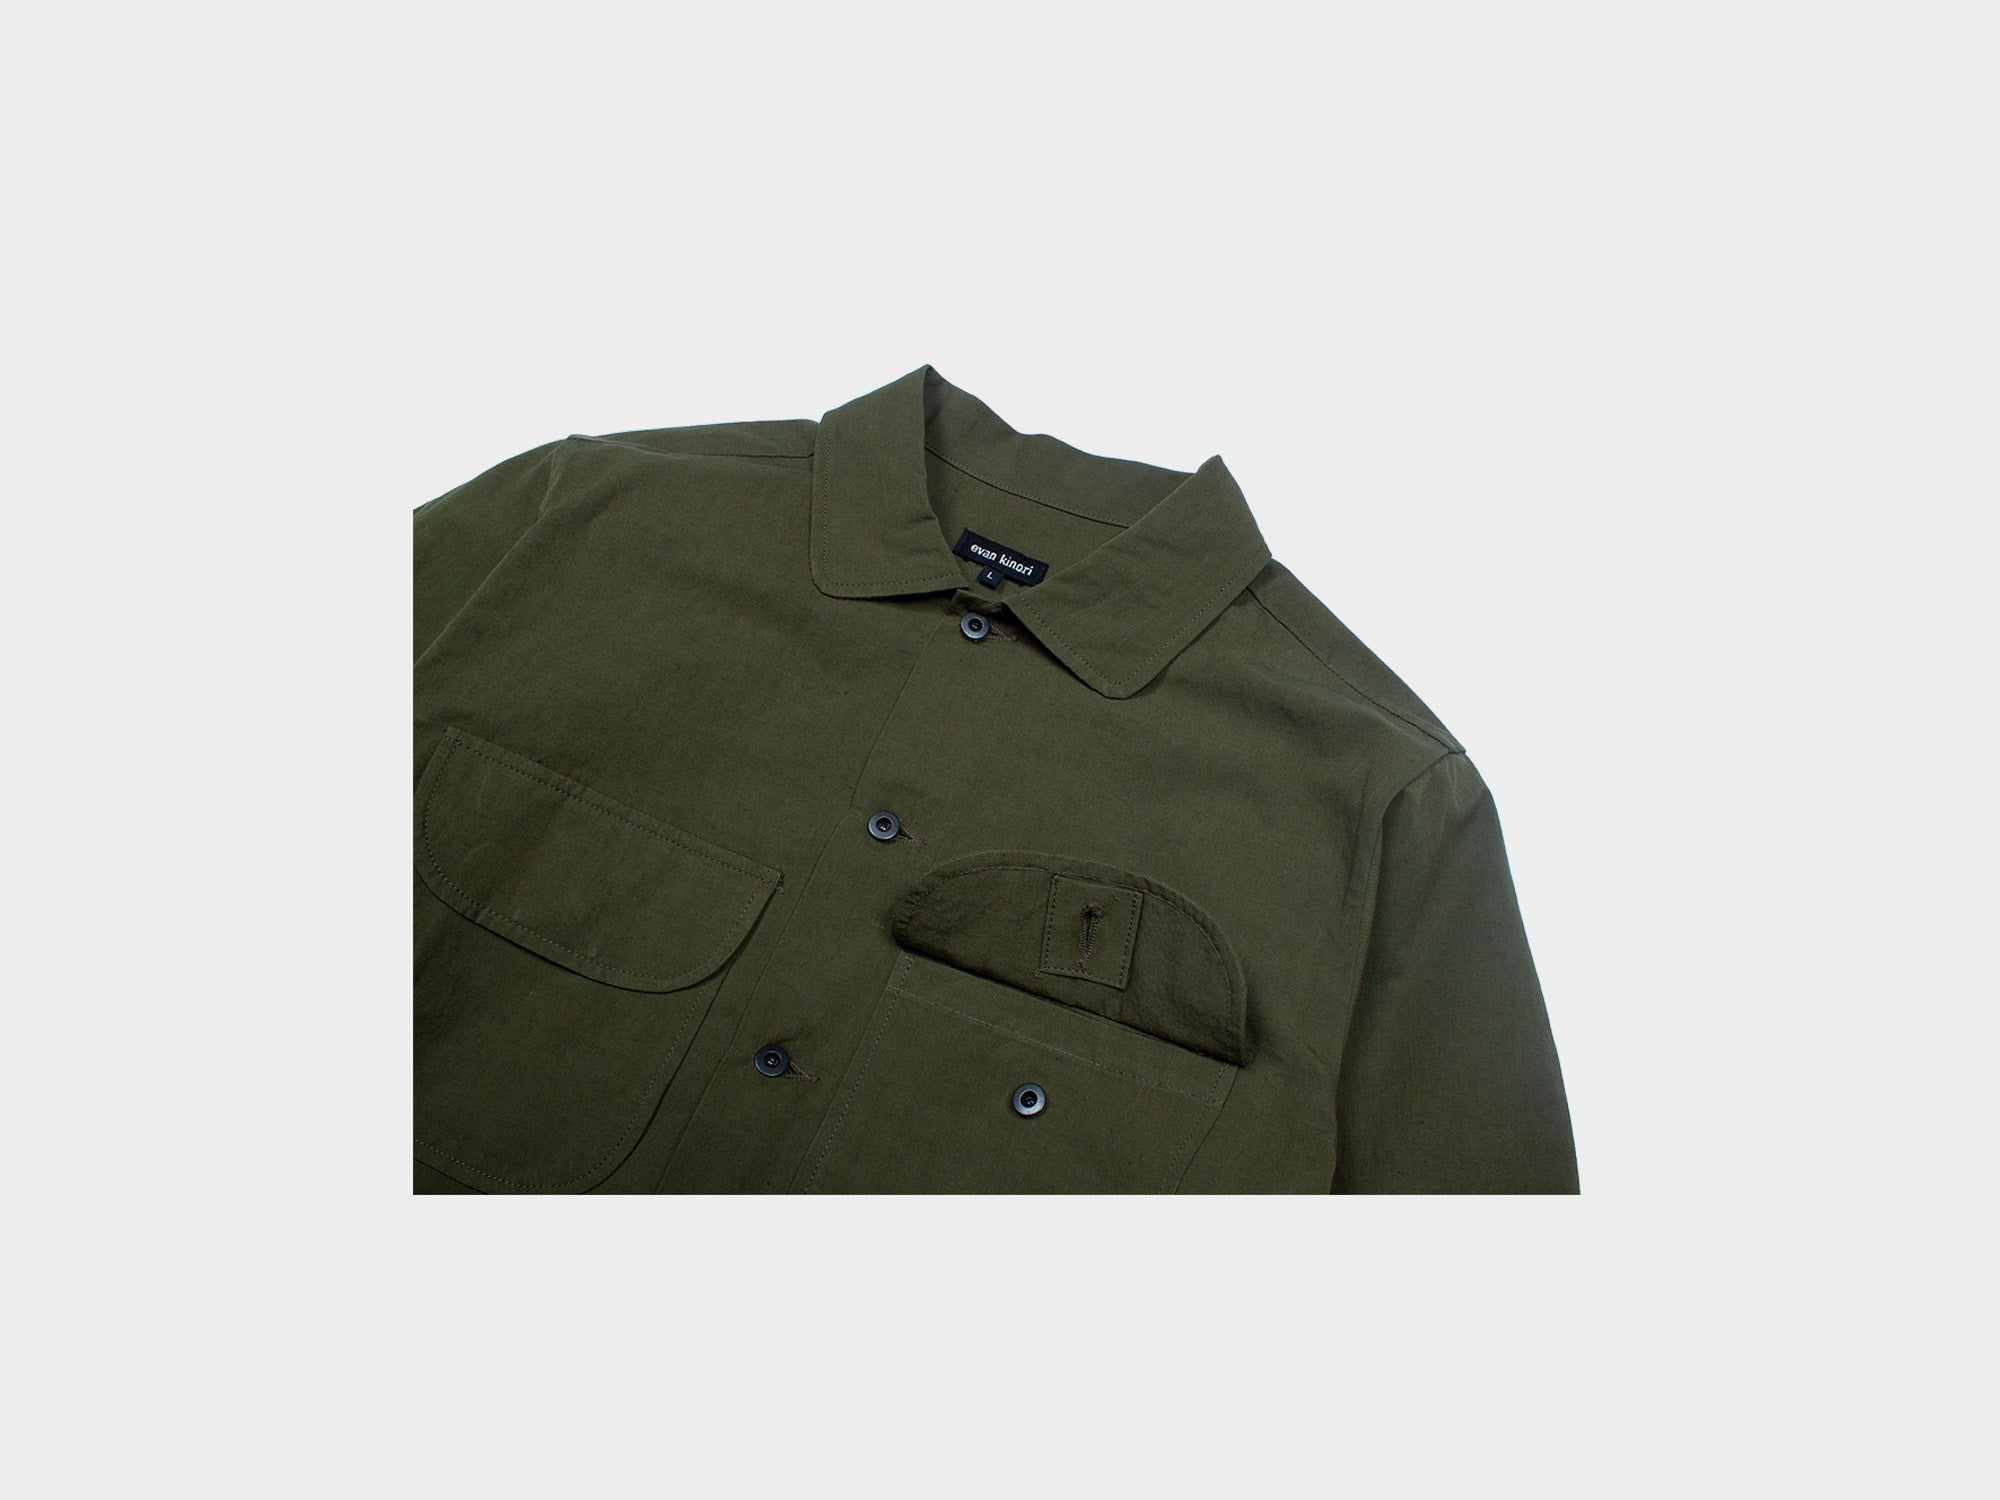 EVAN KINORI FIELD SHIRT [TYPEWRITER]